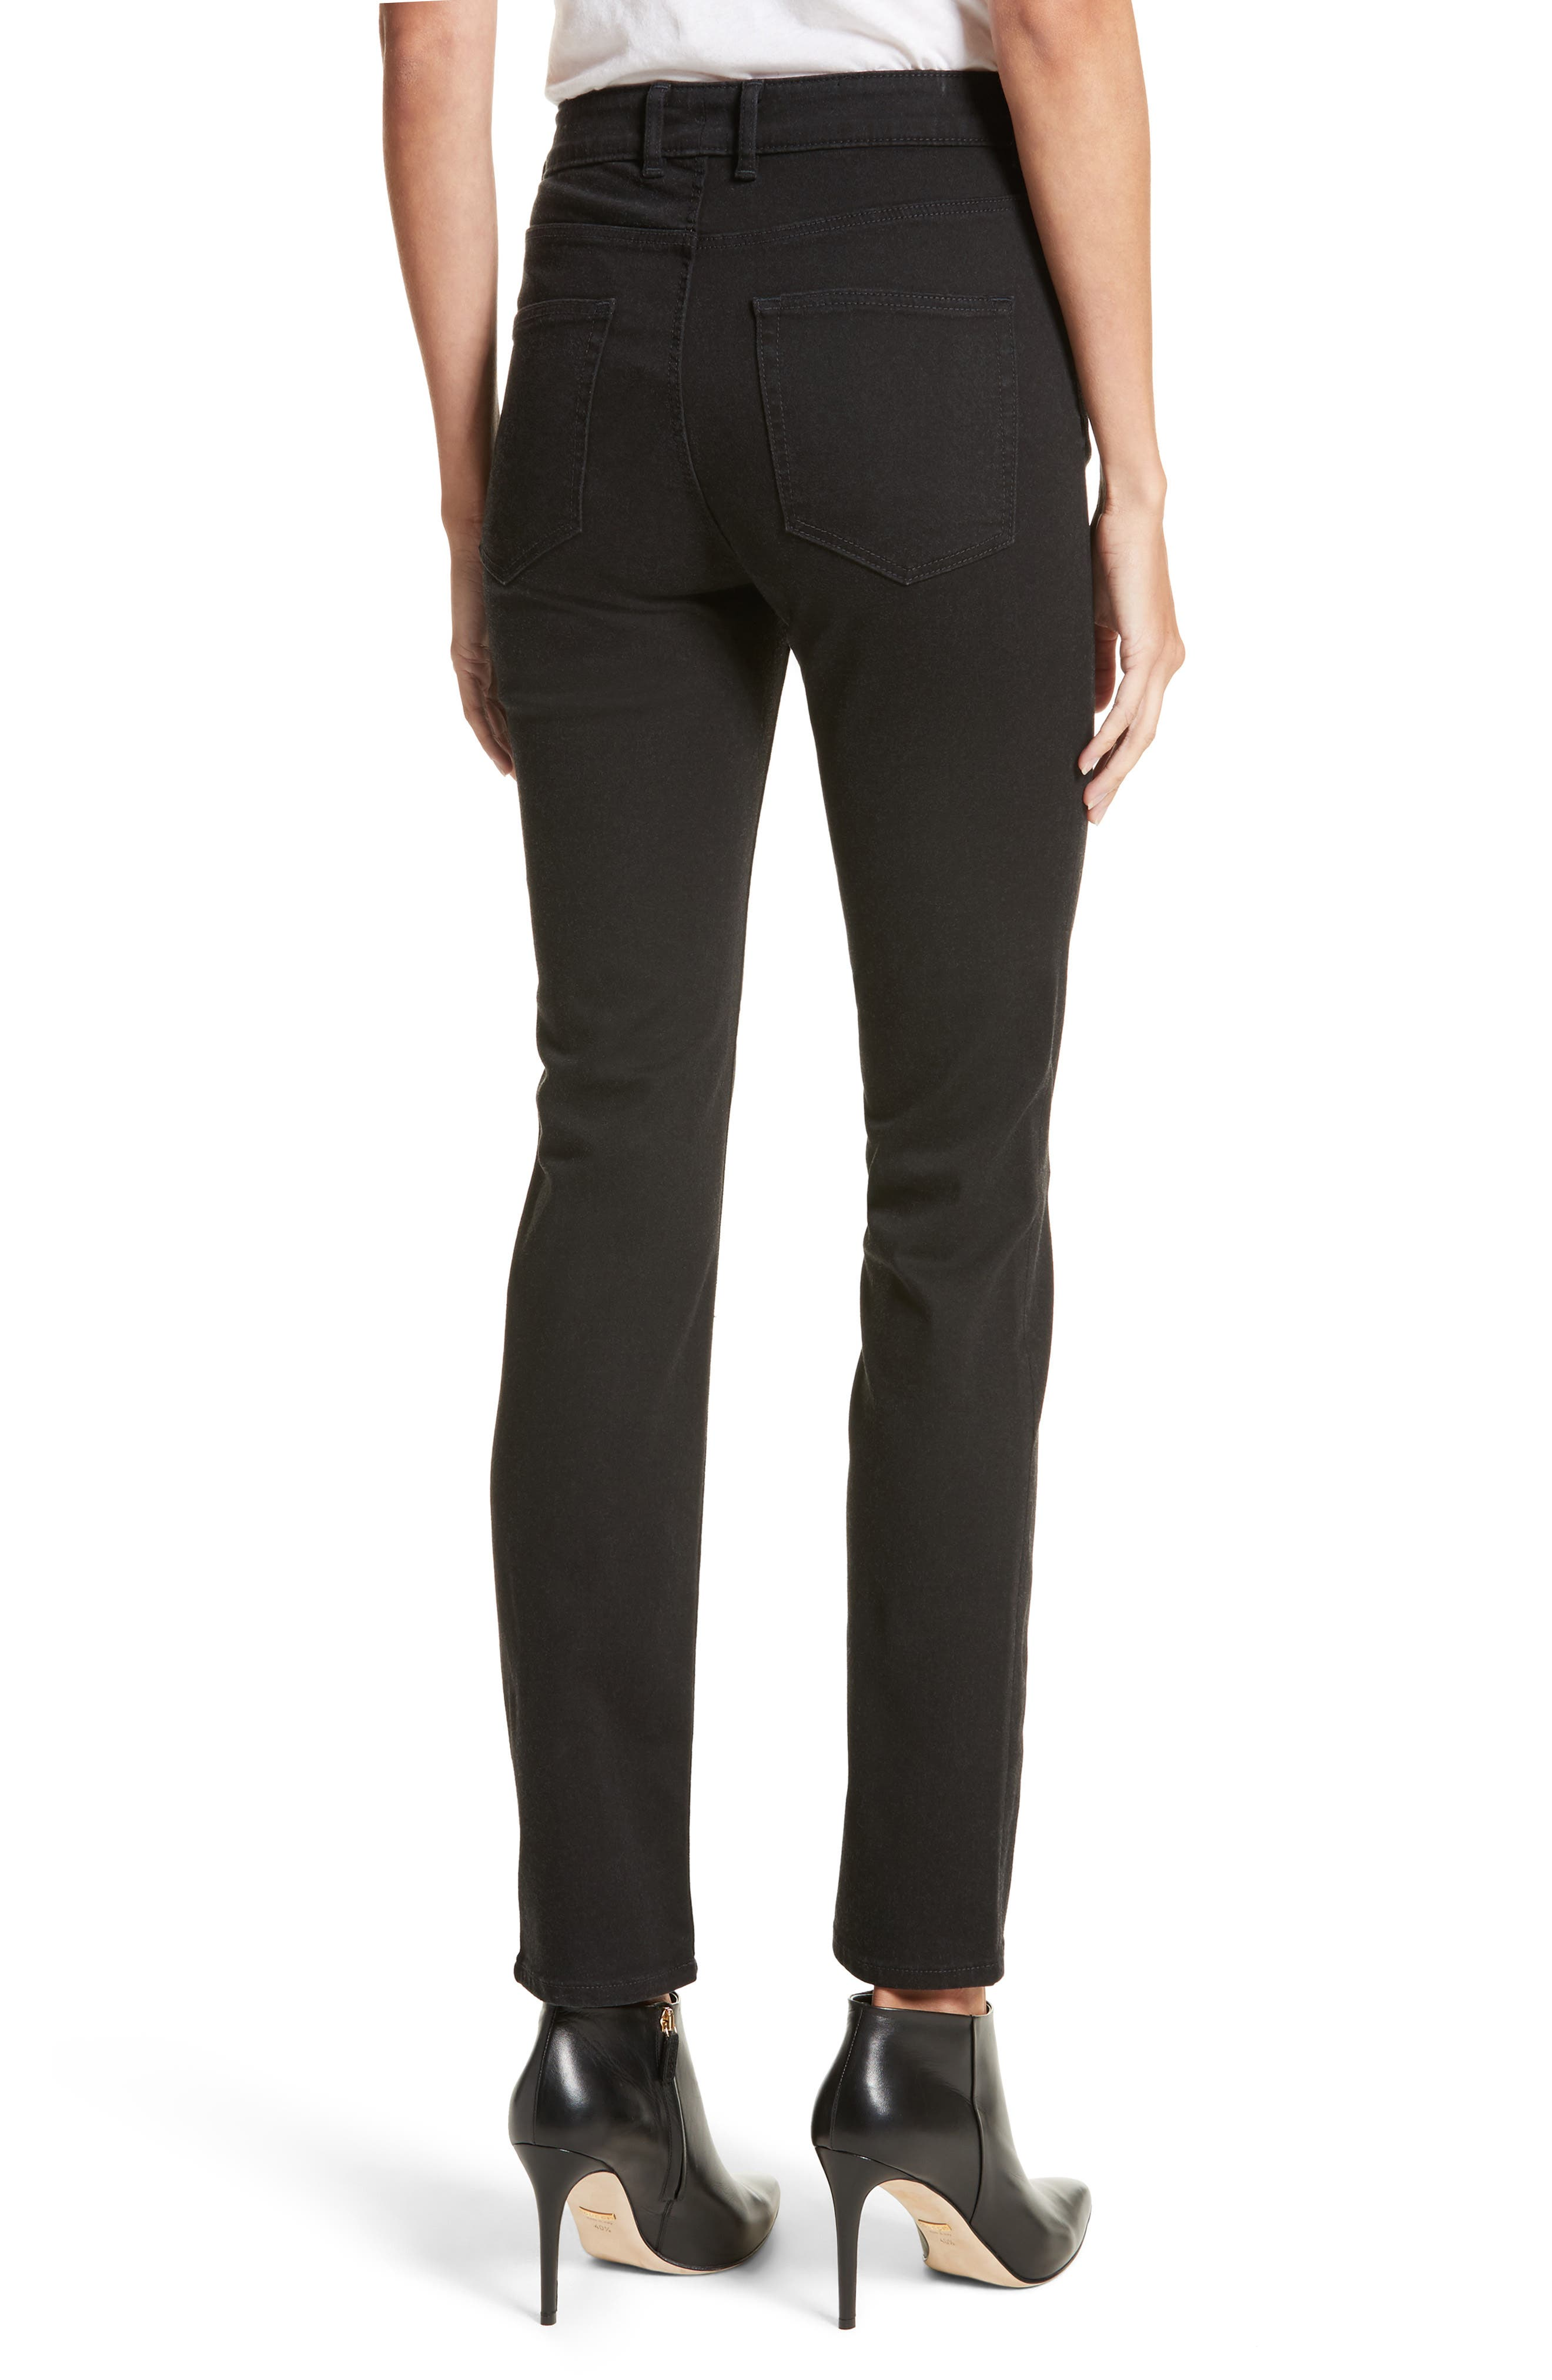 Clemence Skinny Pants,                             Alternate thumbnail 2, color,                             Coal Wash